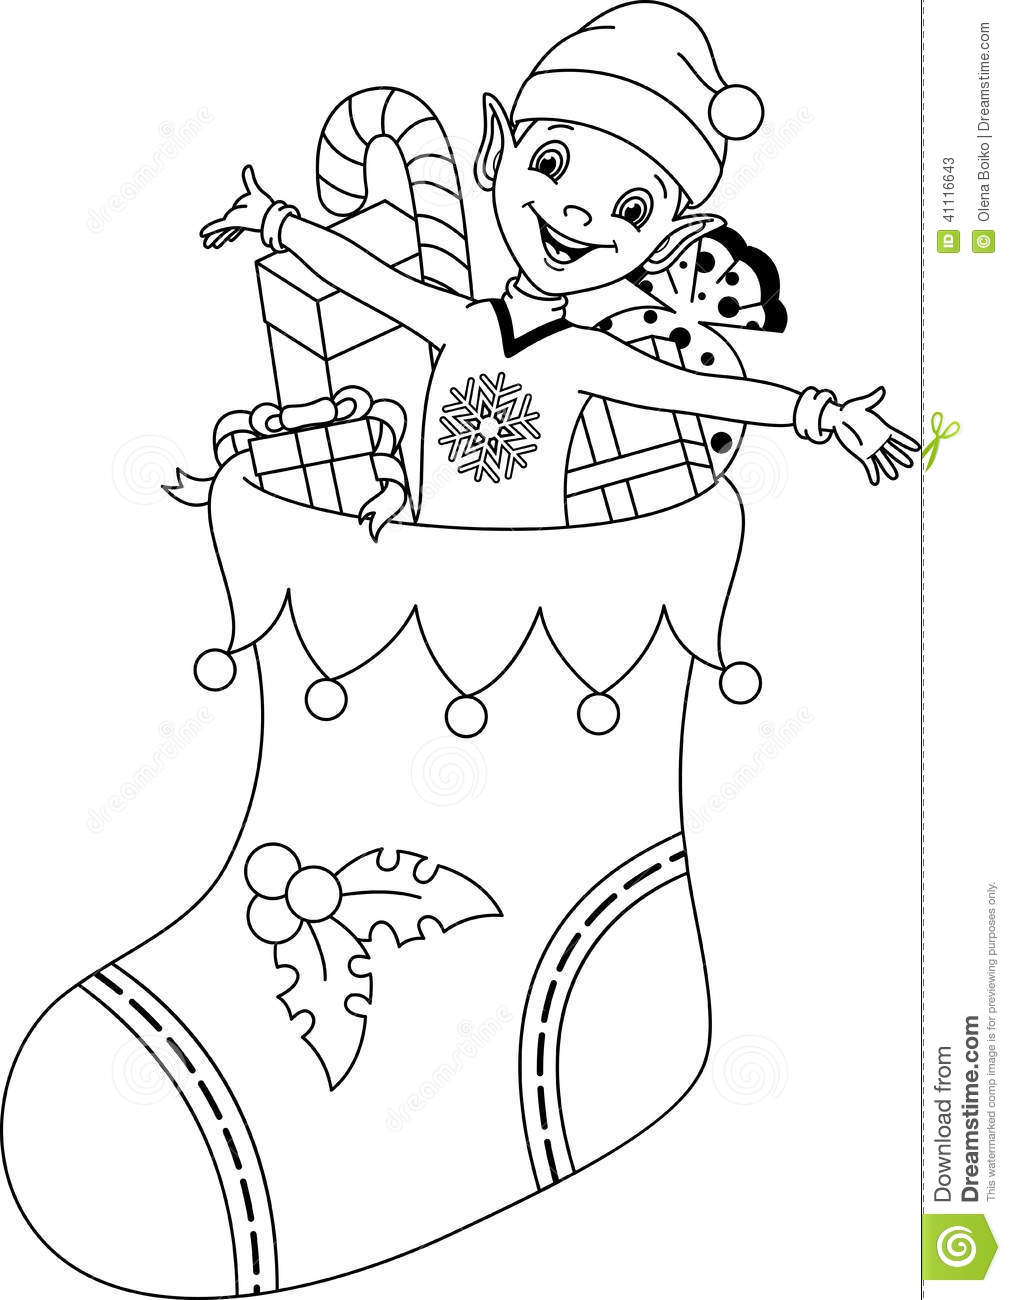 Elf coloring page stock vector